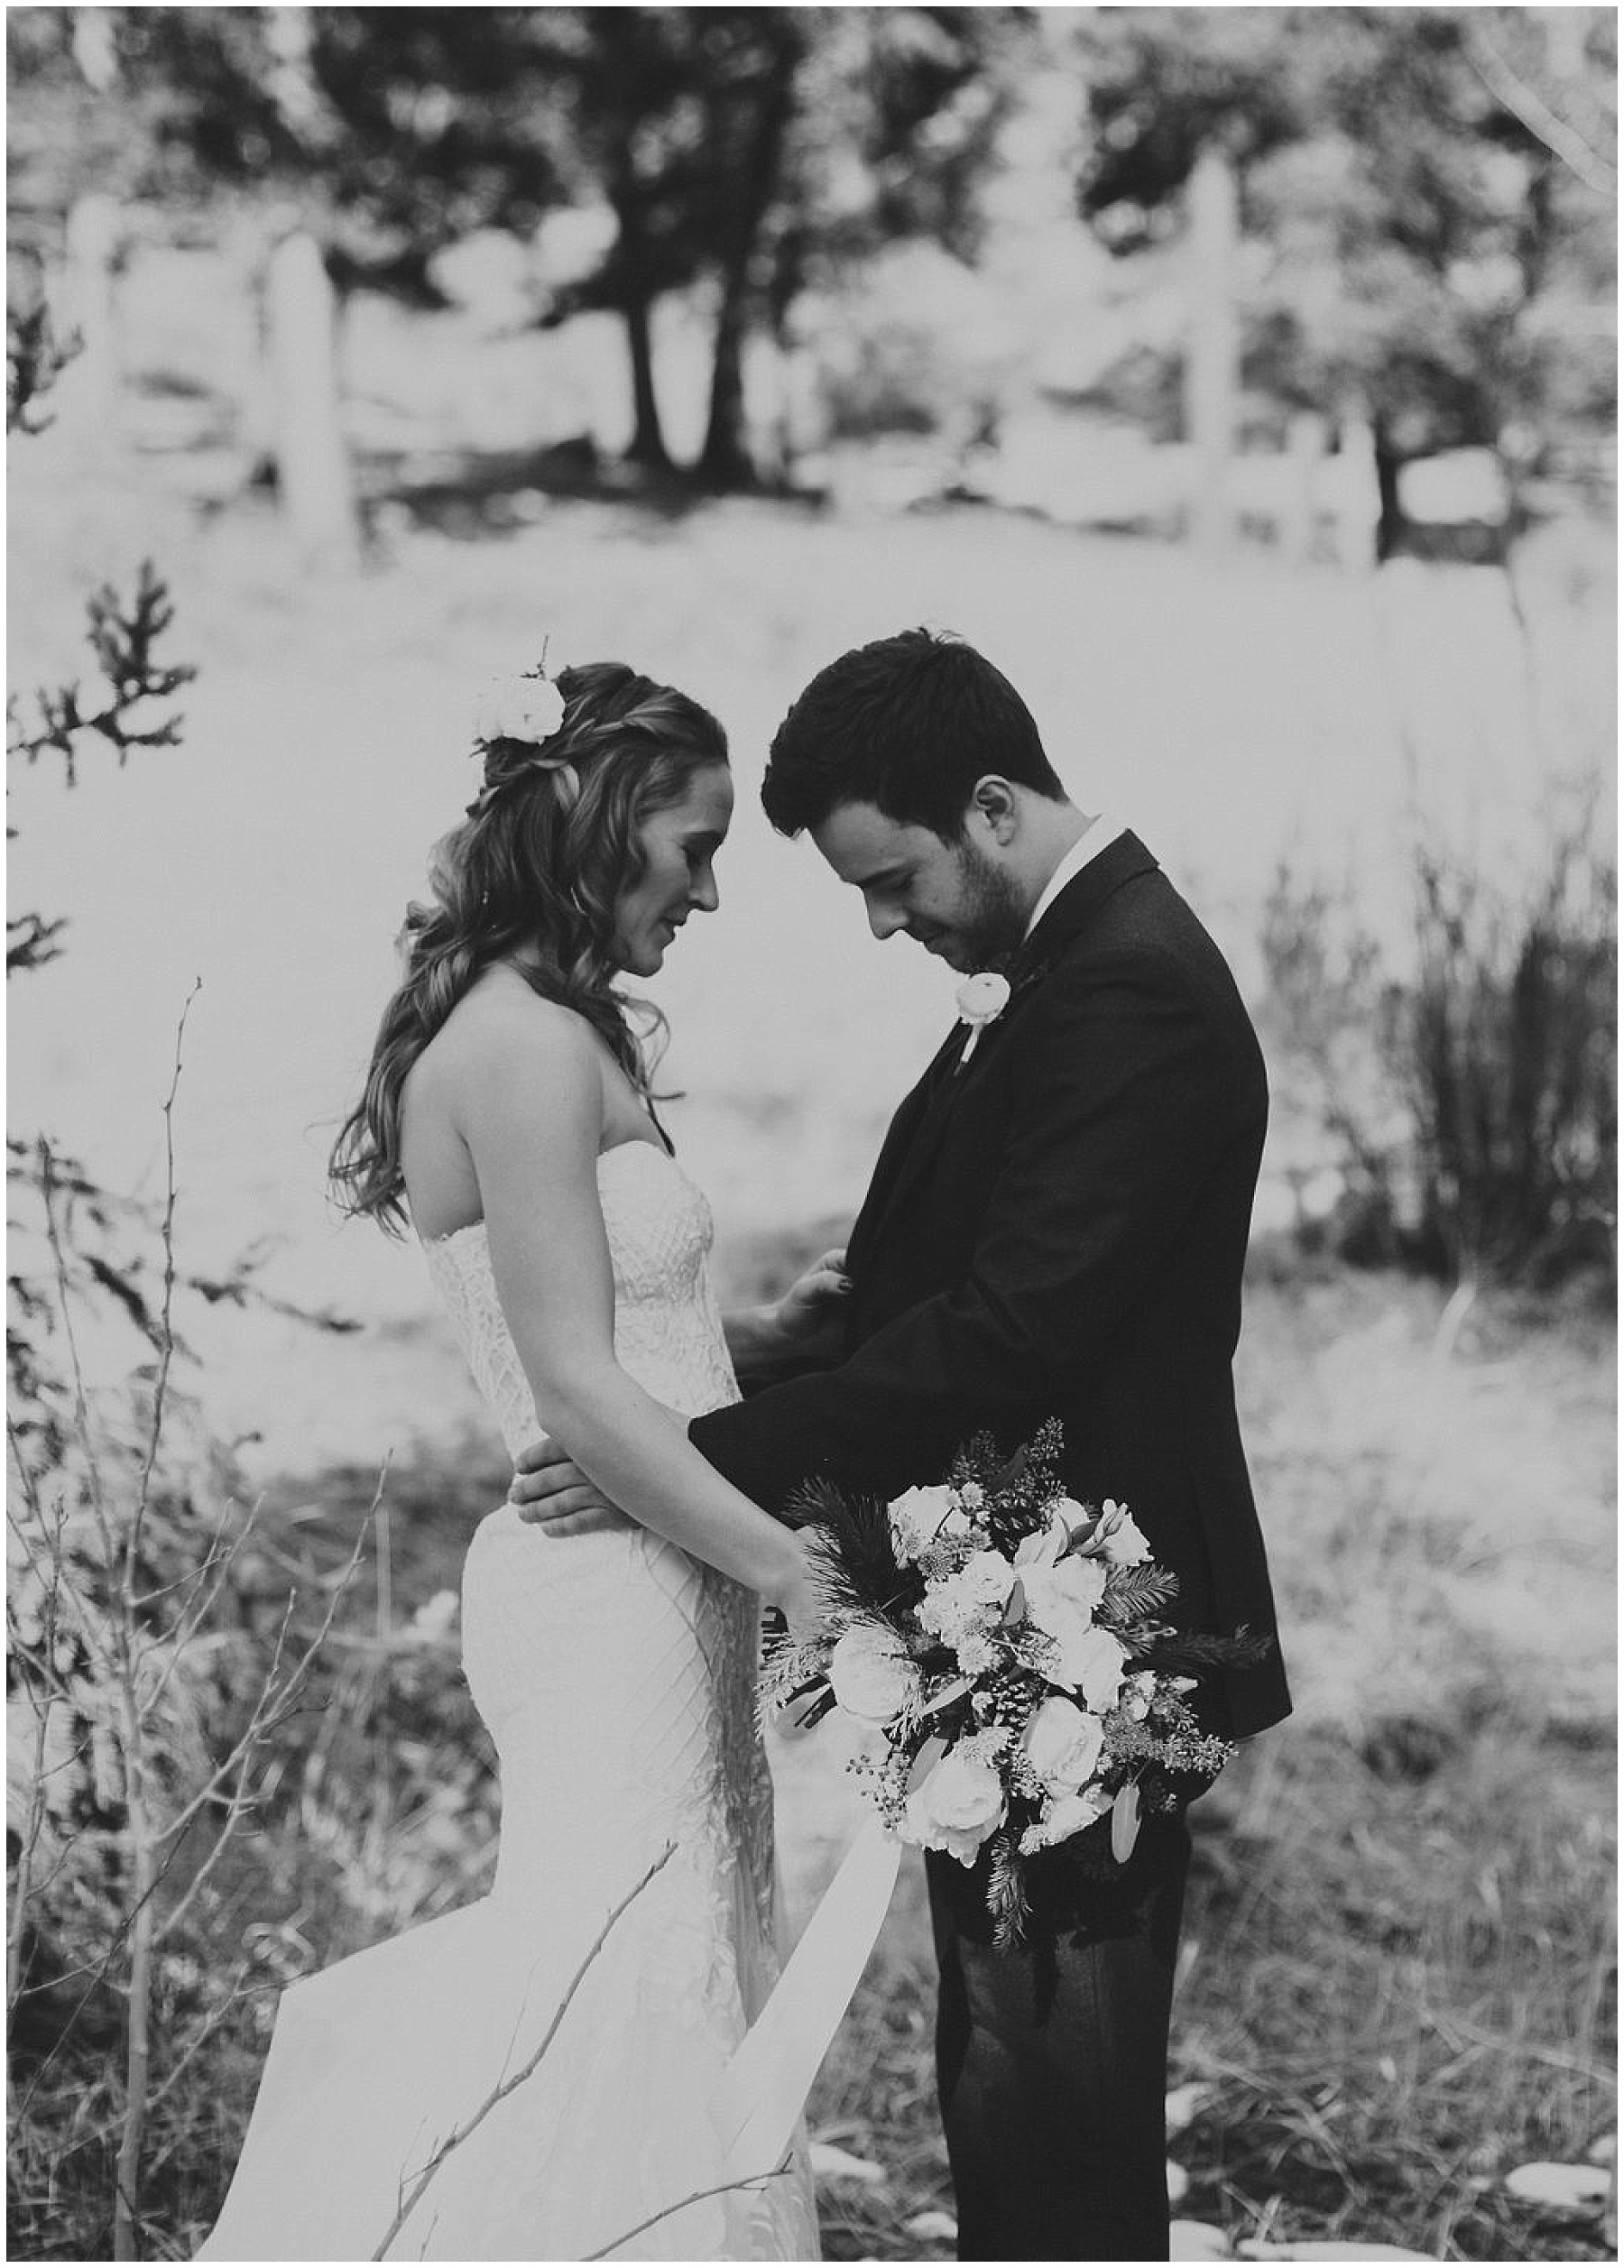 Katesalleyphotography-109_Haley and Dan get married in Estes Park.jpg